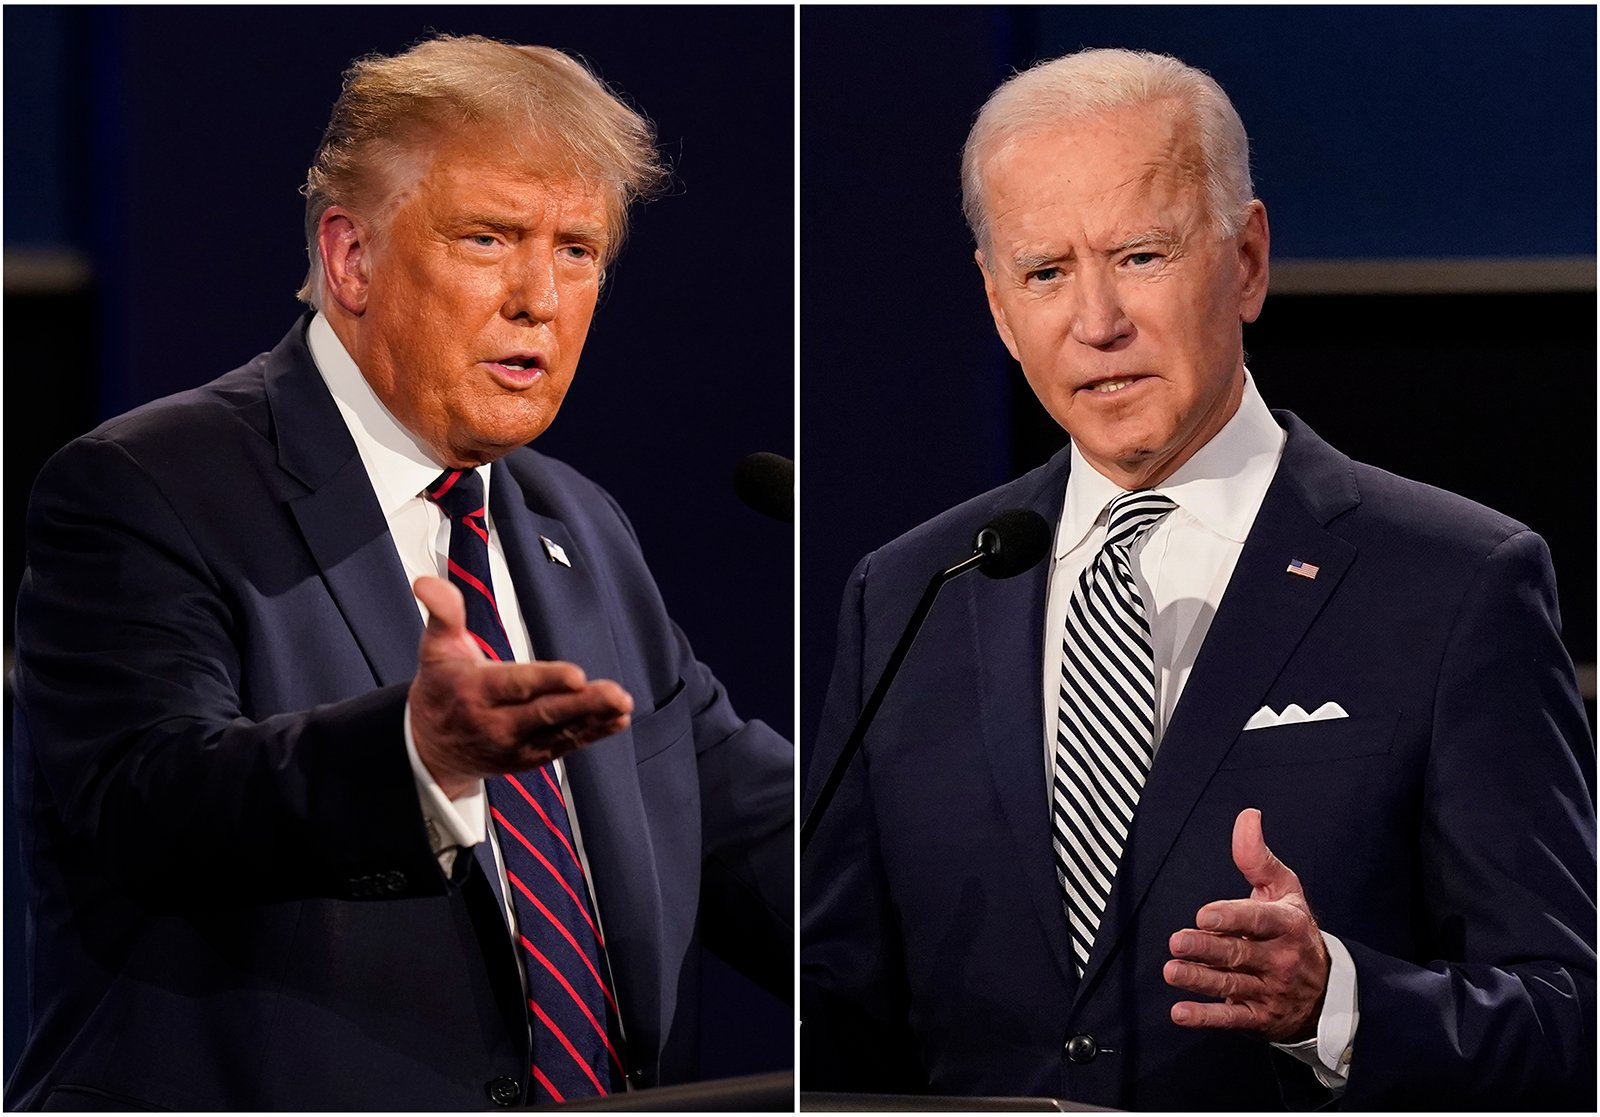 This combination of Sept. 29, 2020, photos shows President Donald Trump, left, and former Vice President Joe Biden during the first presidential debate at Case Western University and Cleveland Clinic, in Cleveland. (AP Photo/Patrick Semansky)